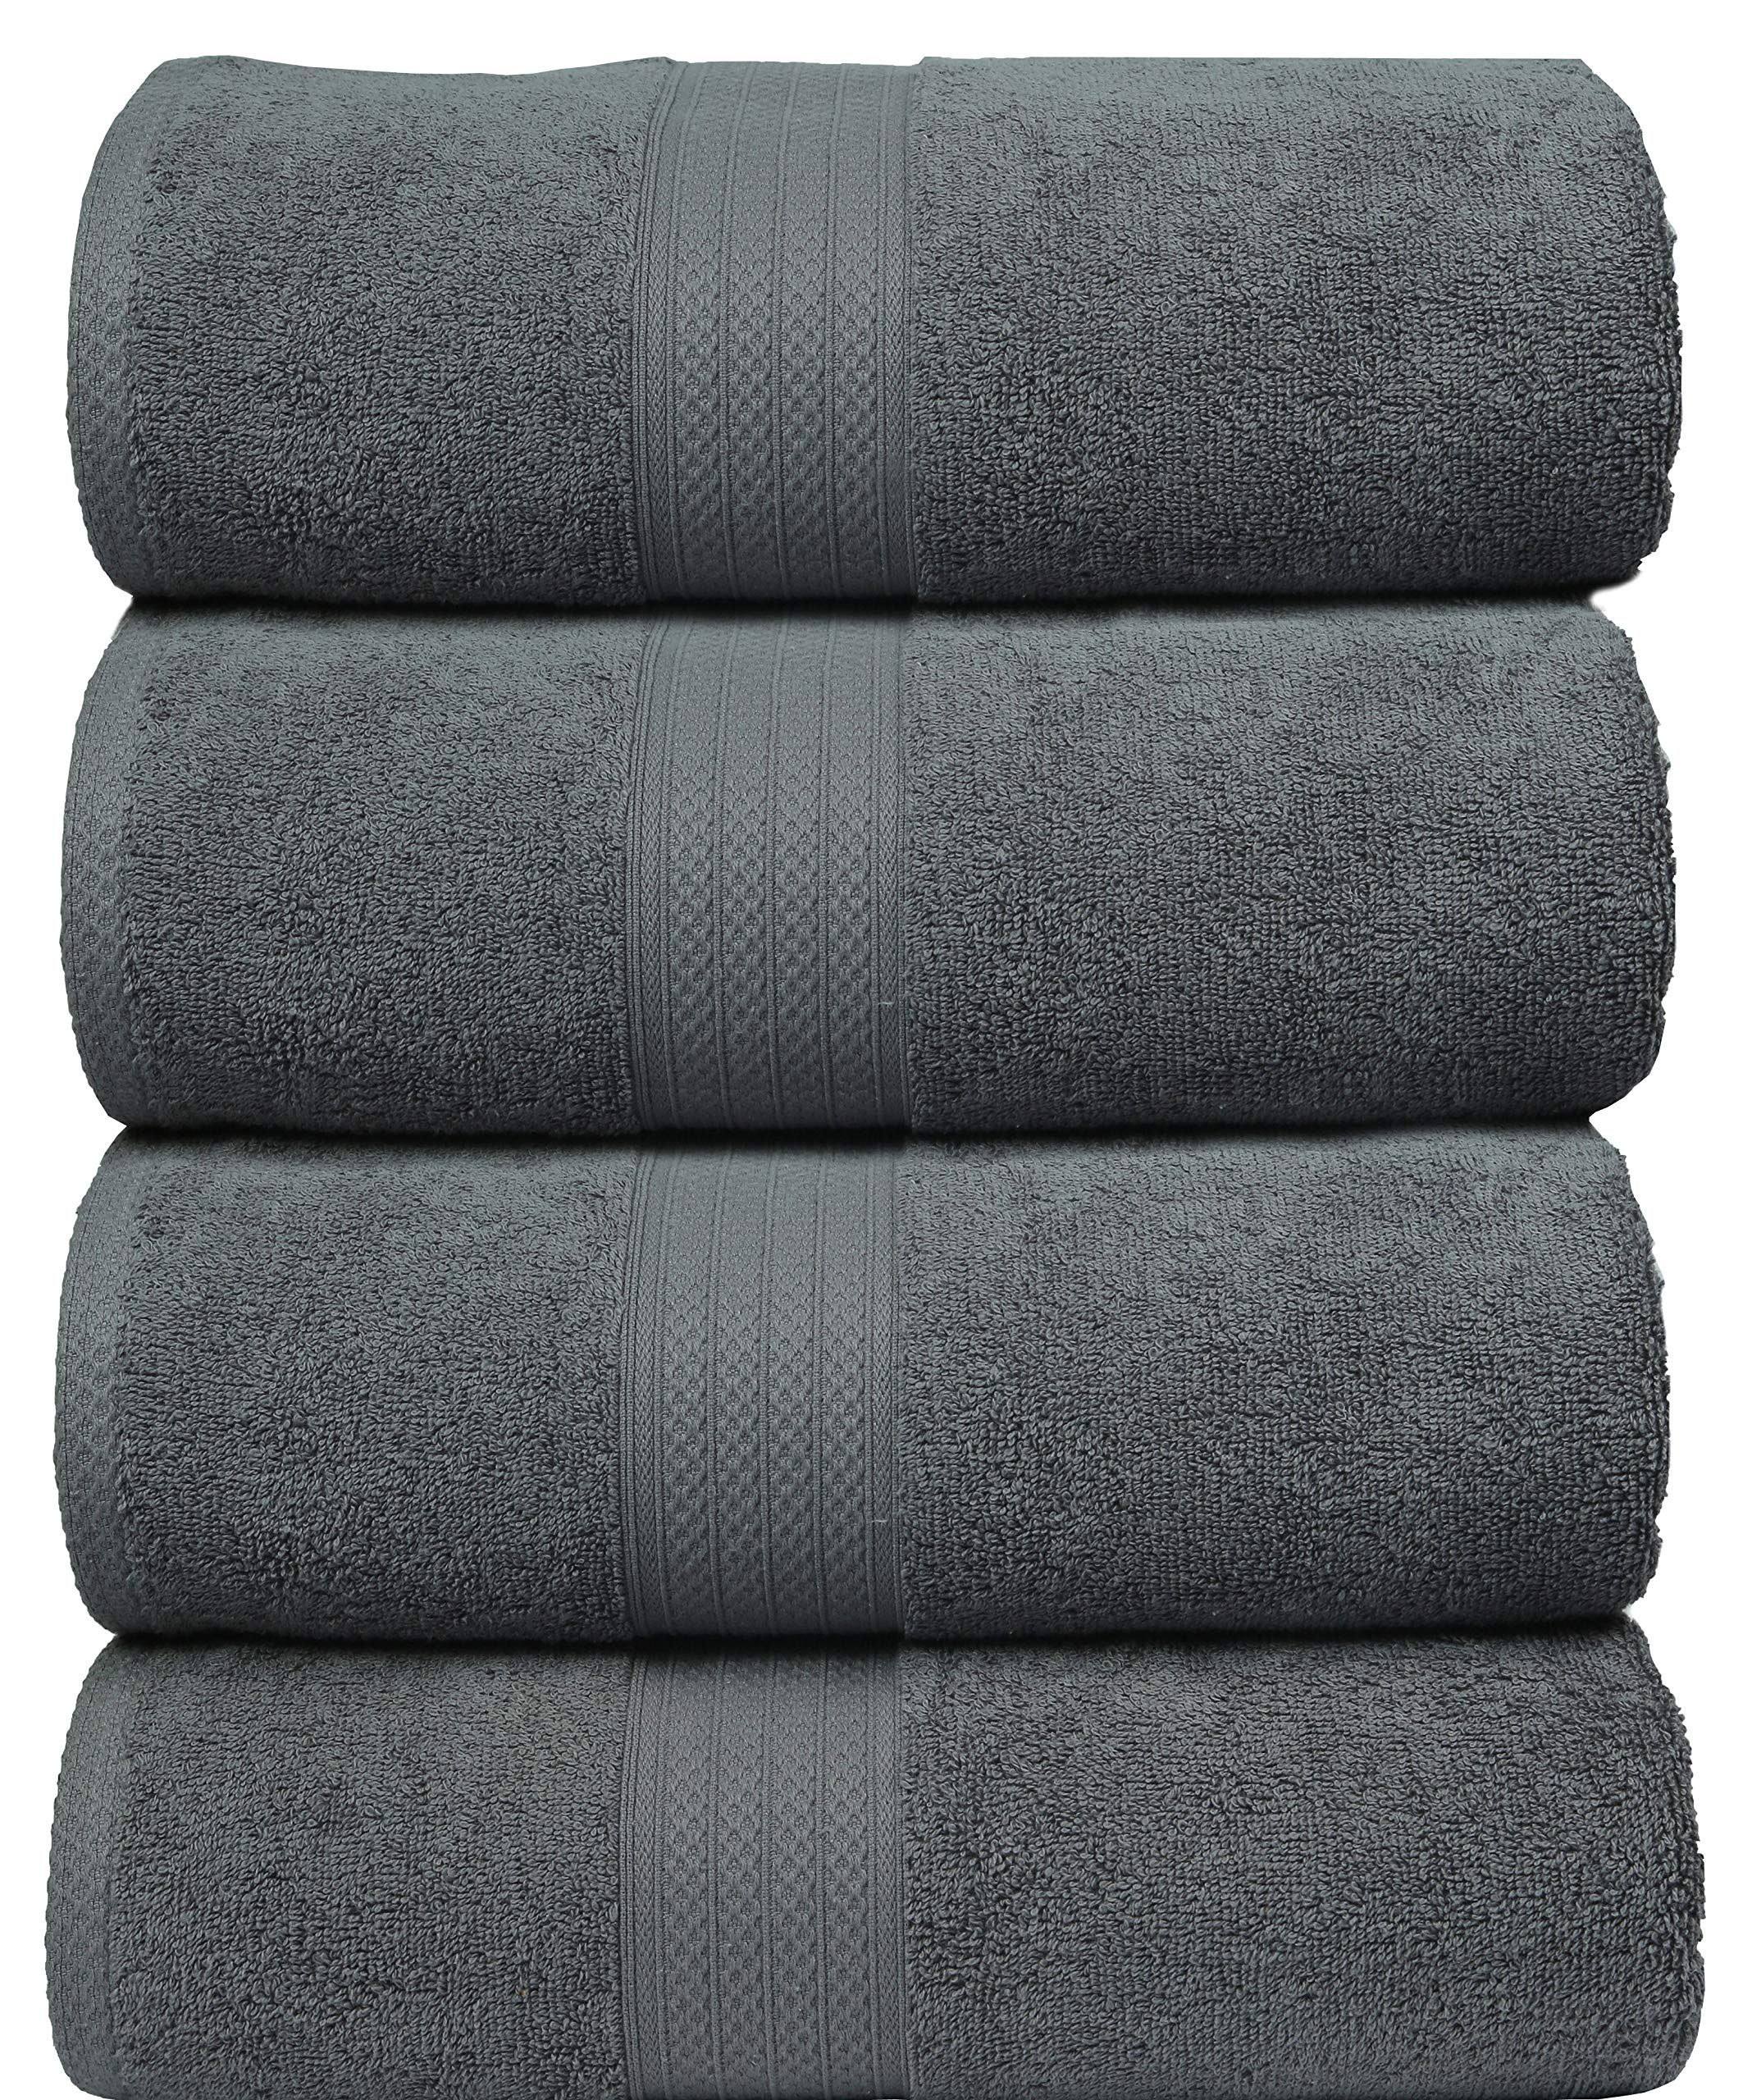 MAHI HOME Bath Towels in 100% Ring Spun Combed Cotton Luxurious & Ultra Soft,Highly Absorbent,Bathroom Towels,Bath Towel Set,Bath Towel Cotton,Bath Towel- 27x54-Charcoal Grey (Set of 4 Pieces)